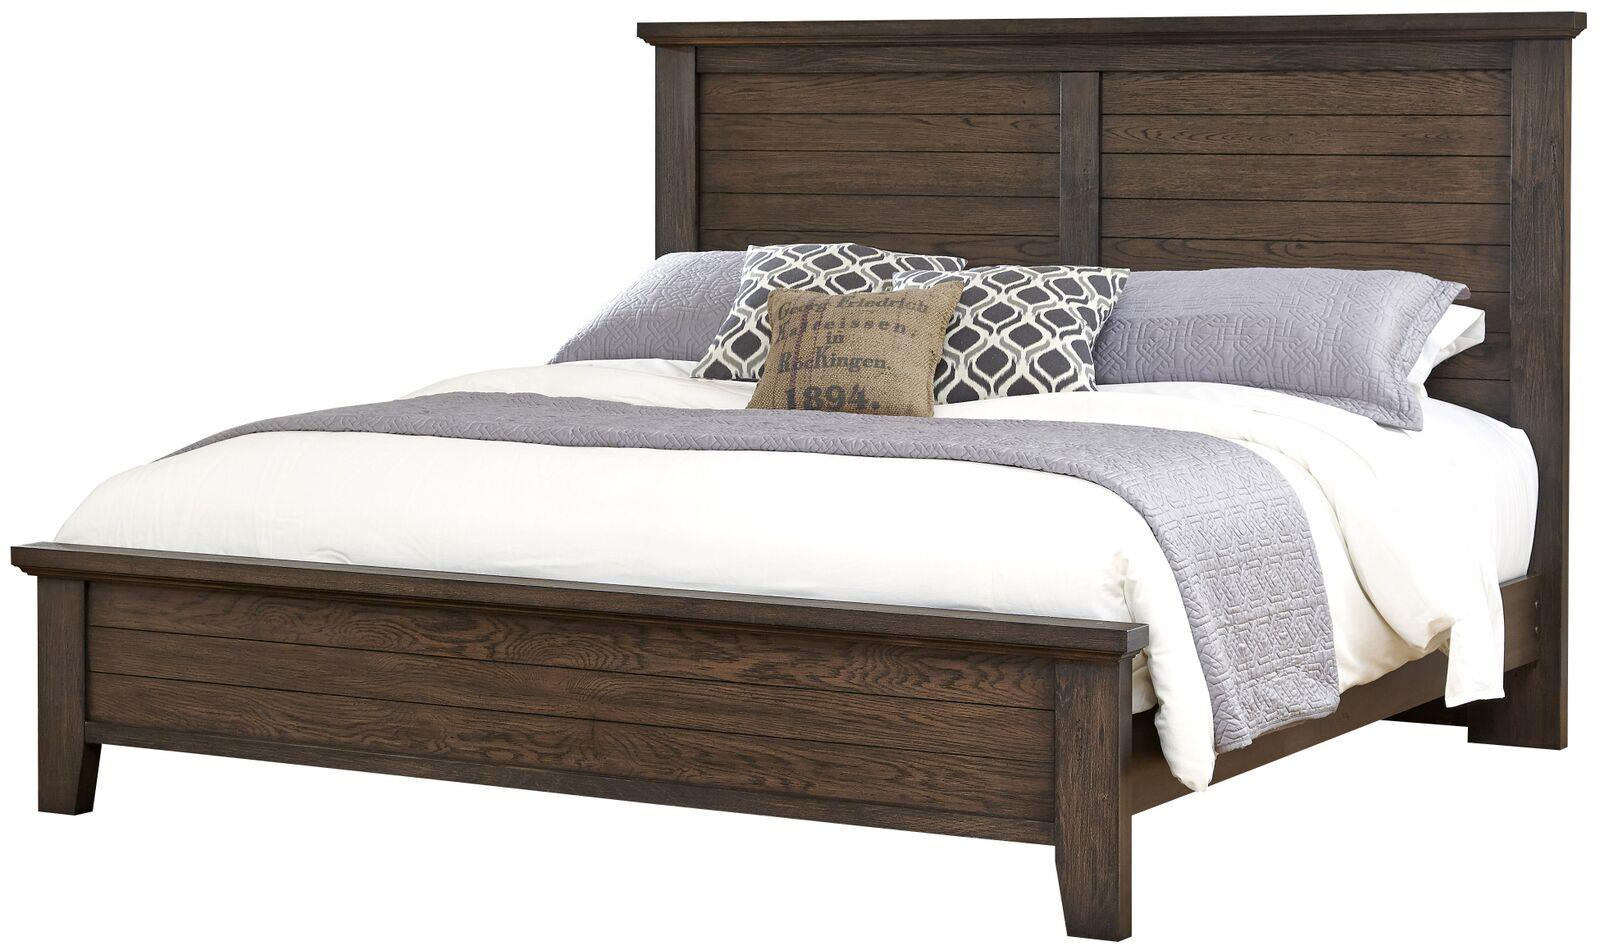 Vaughan Bassett Cassell Park Queen Plank Bed - Item Number: 518-558+855+922